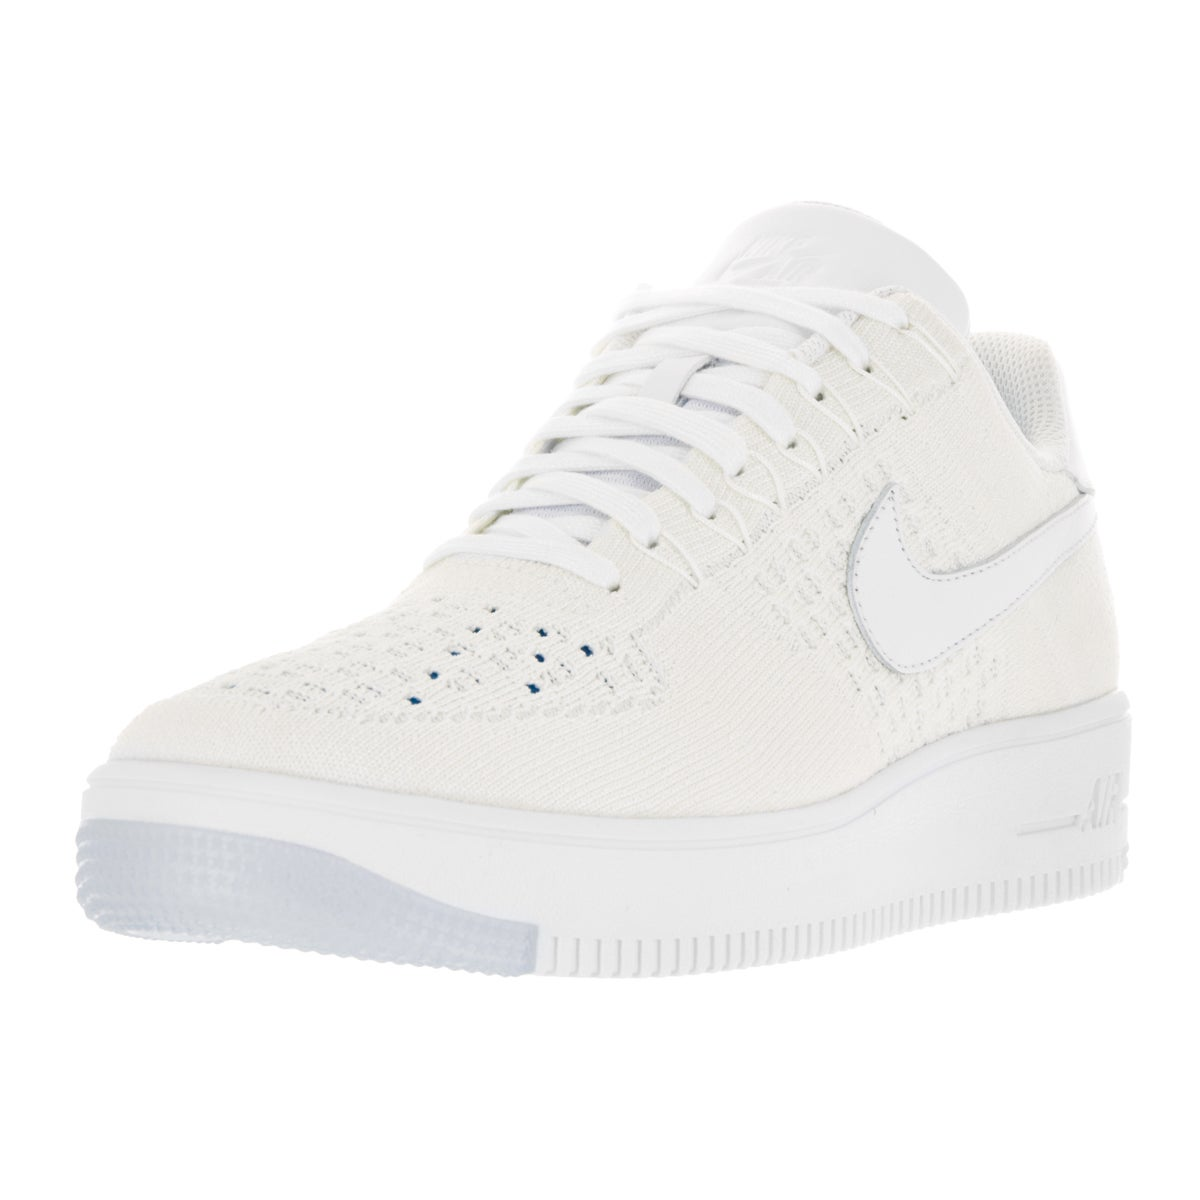 Nike Air Force 1 Ultra Flyknit Low WhiteWhite Ice (817419